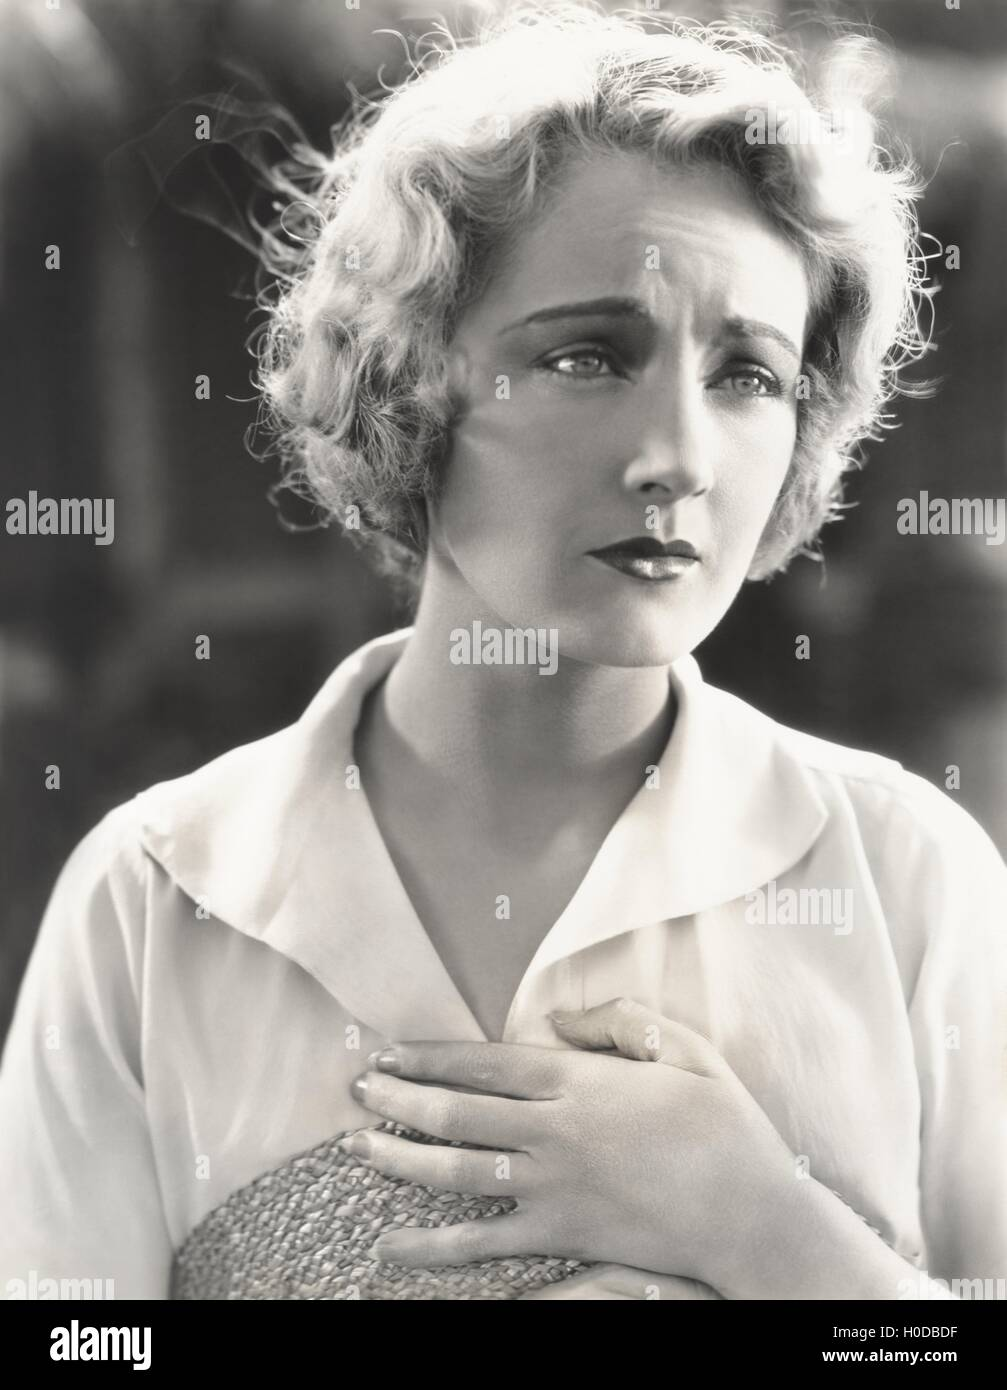 Sad woman clutching her heart - Stock Image